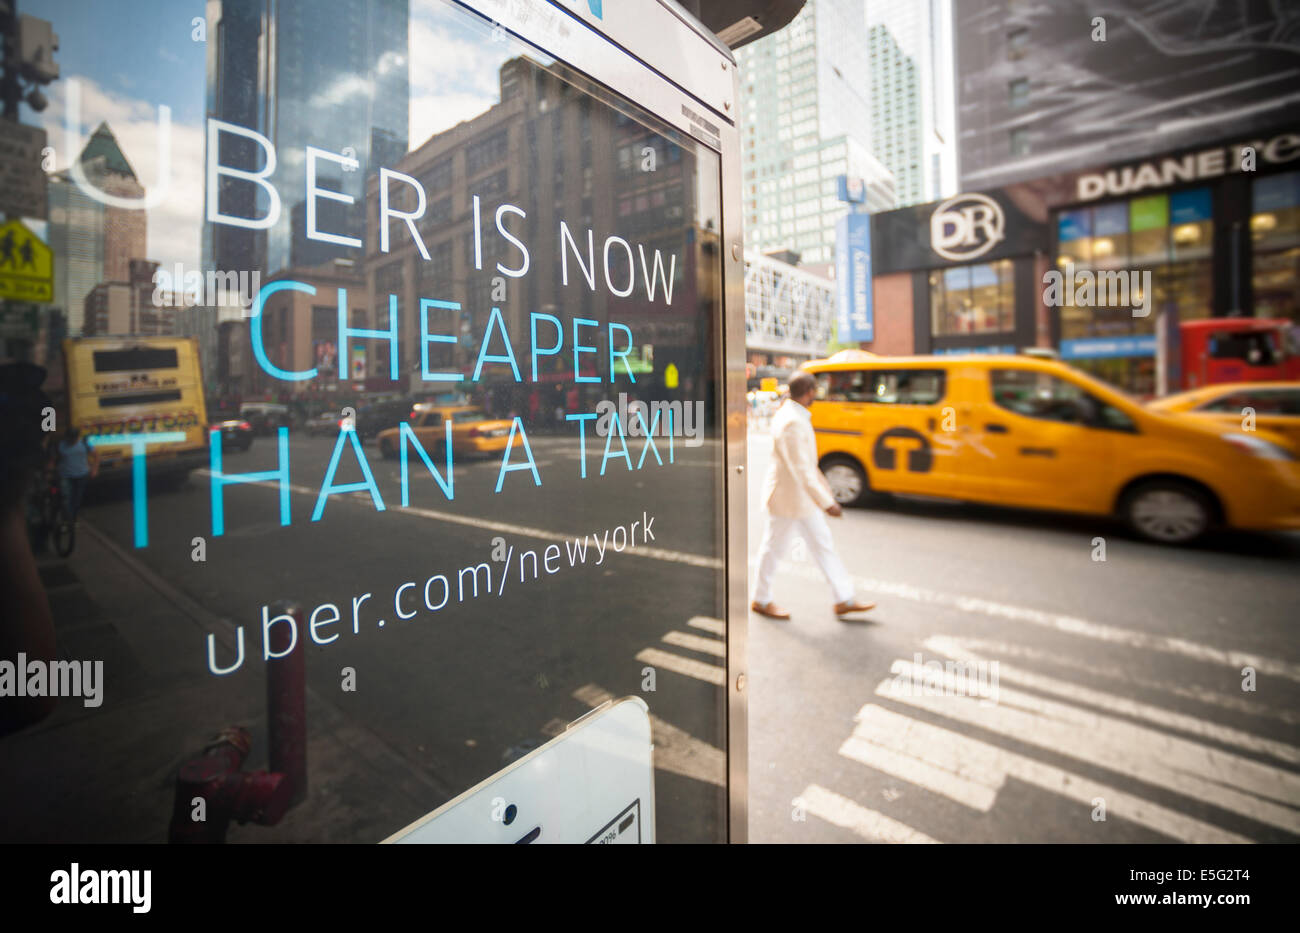 An advertisement on a telephone kiosk for Uber in Midtown in New York - Stock Image